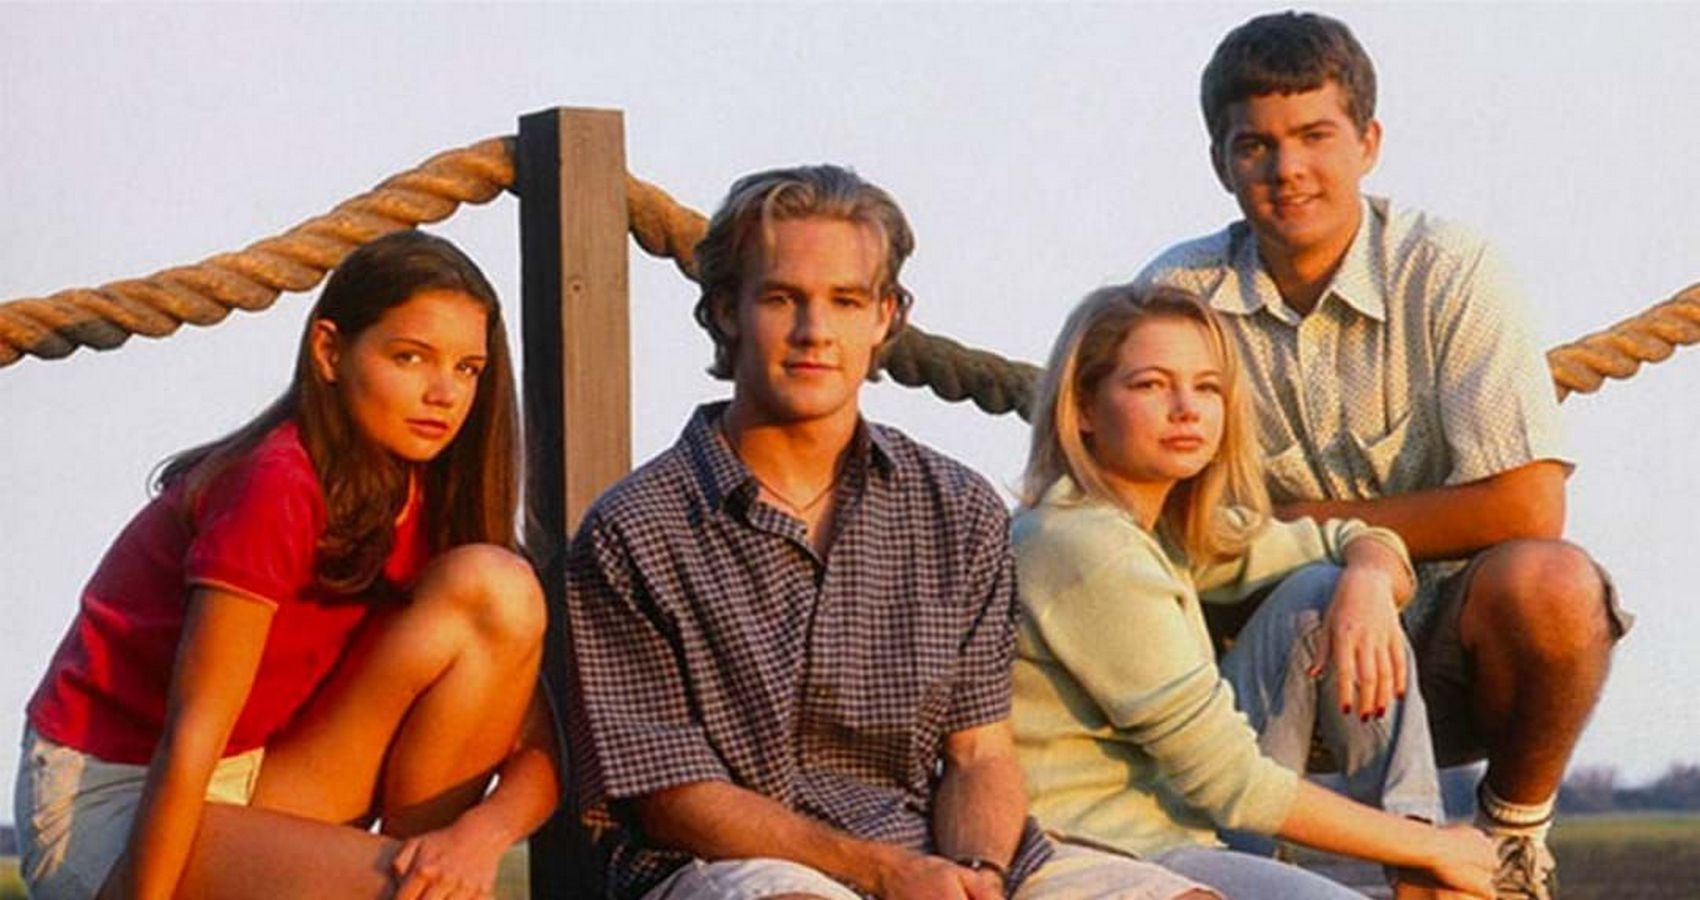 'Dawson's Creek' Is Finally Coming To Netflix! | Moms.com